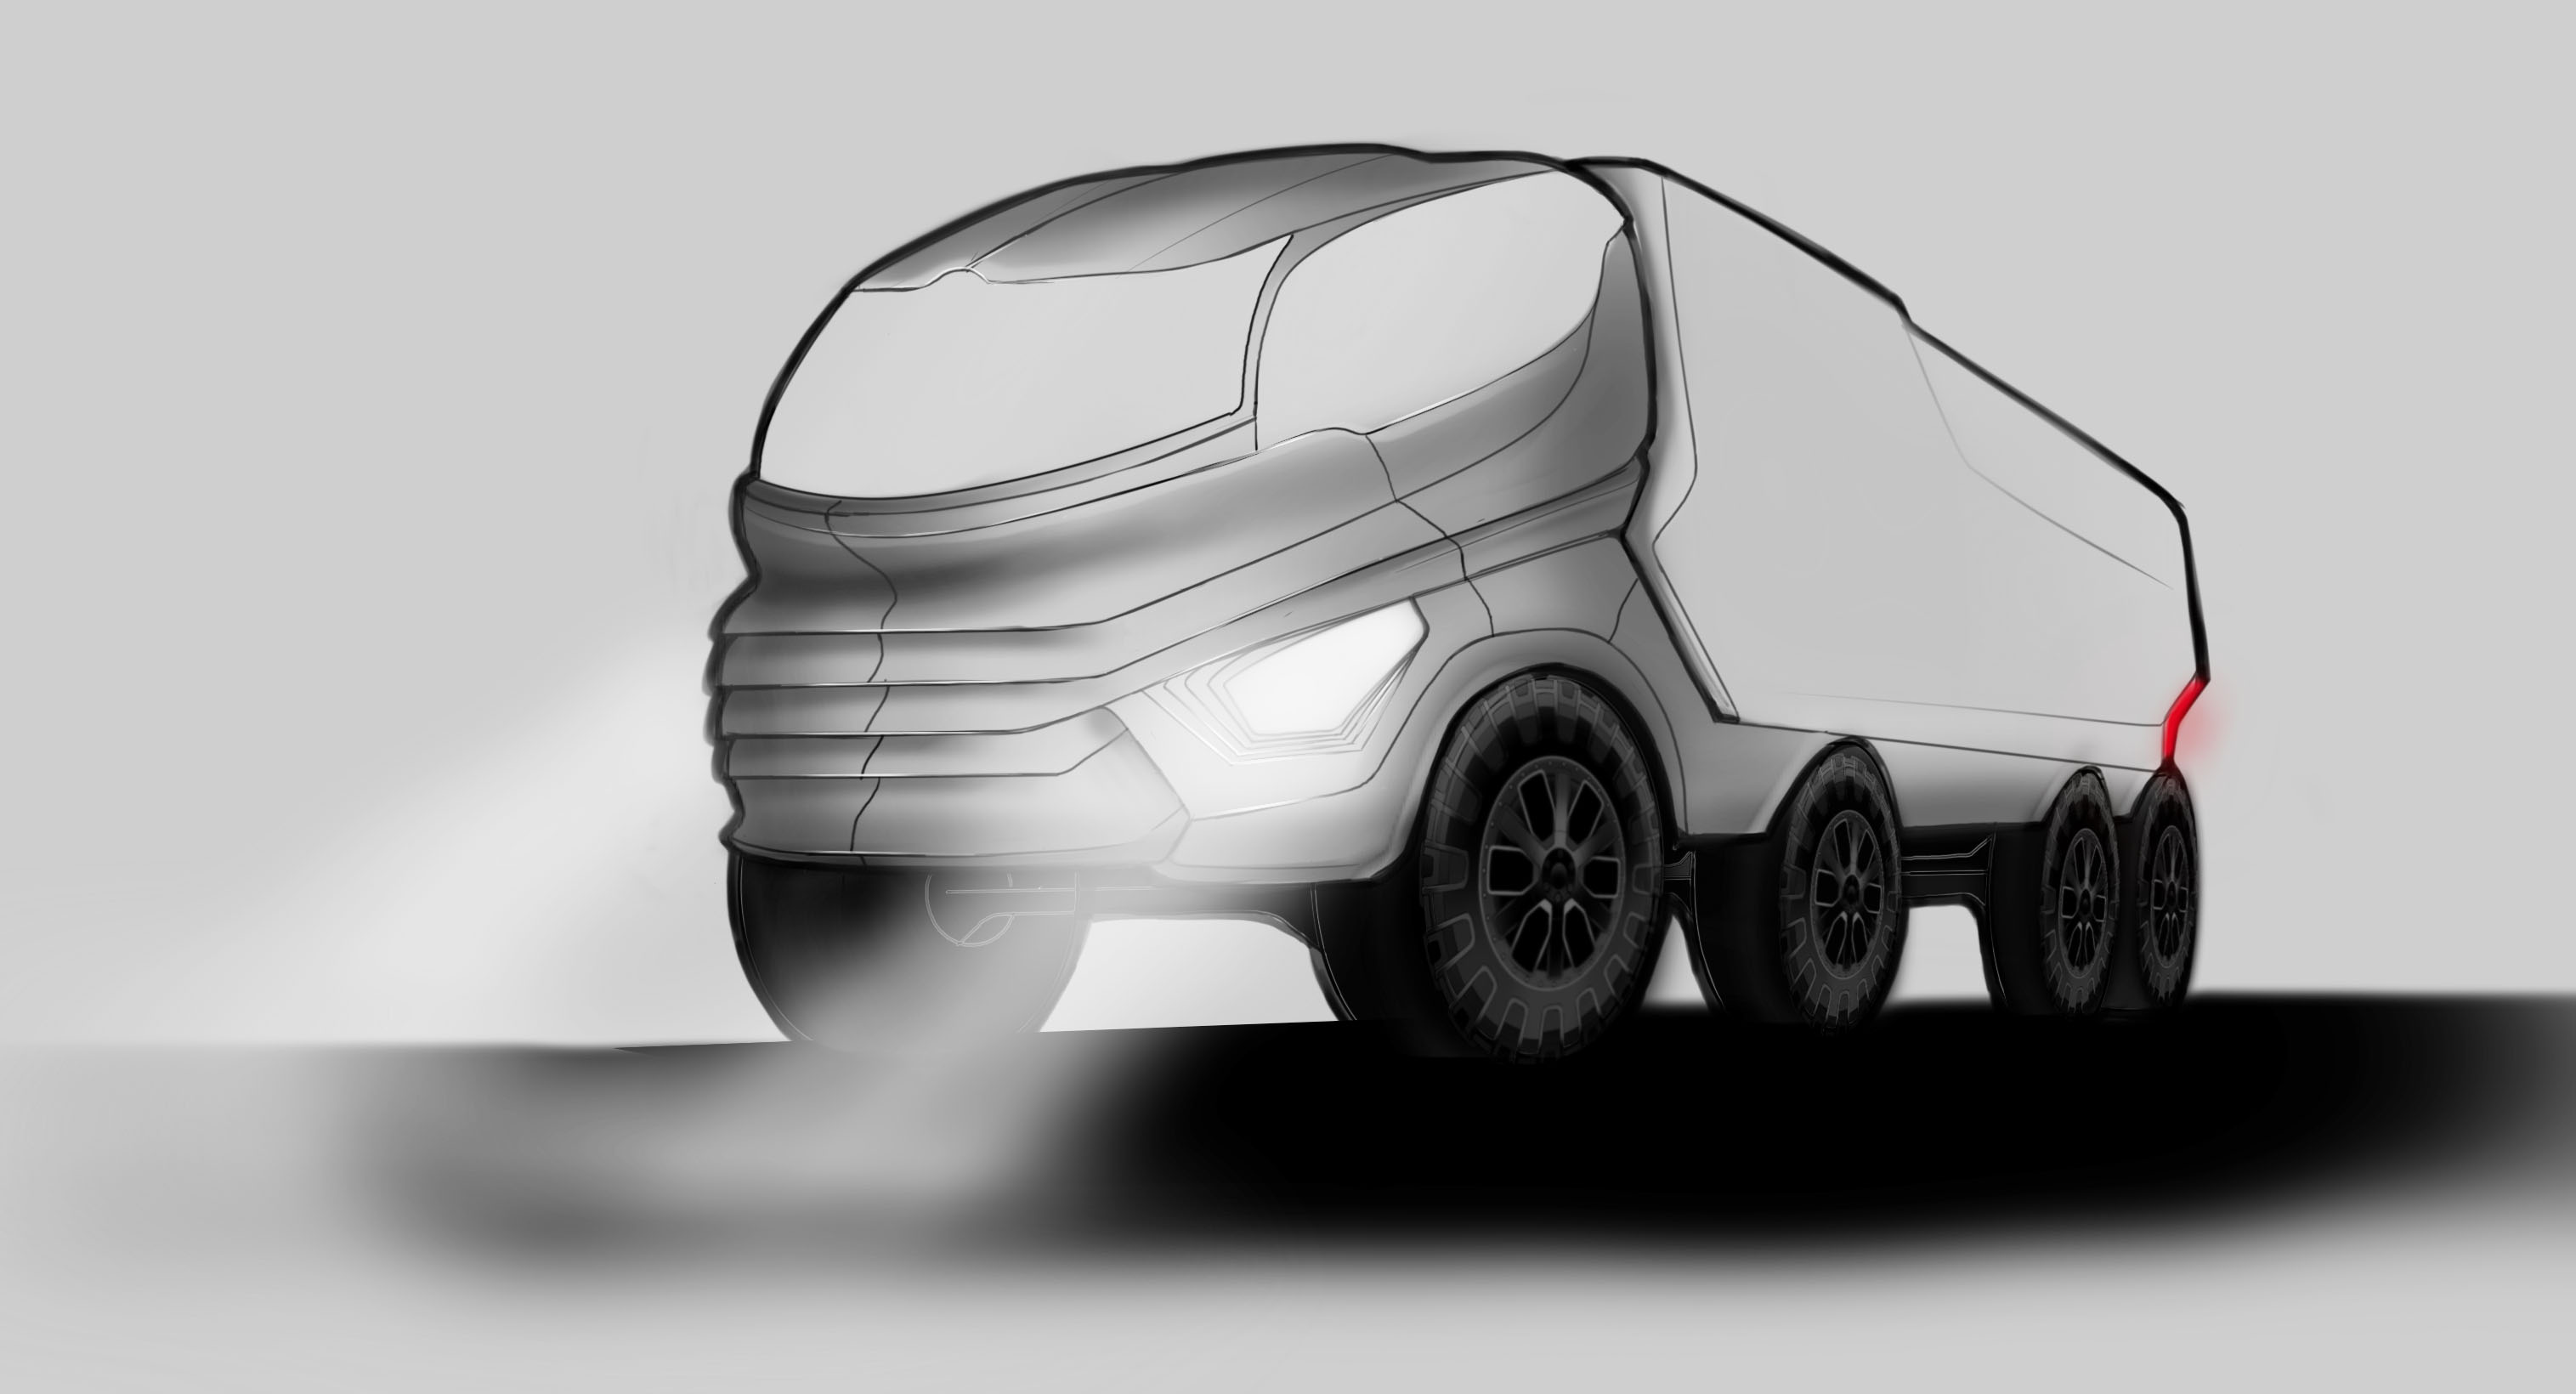 Truck inspired by Rhinoceros